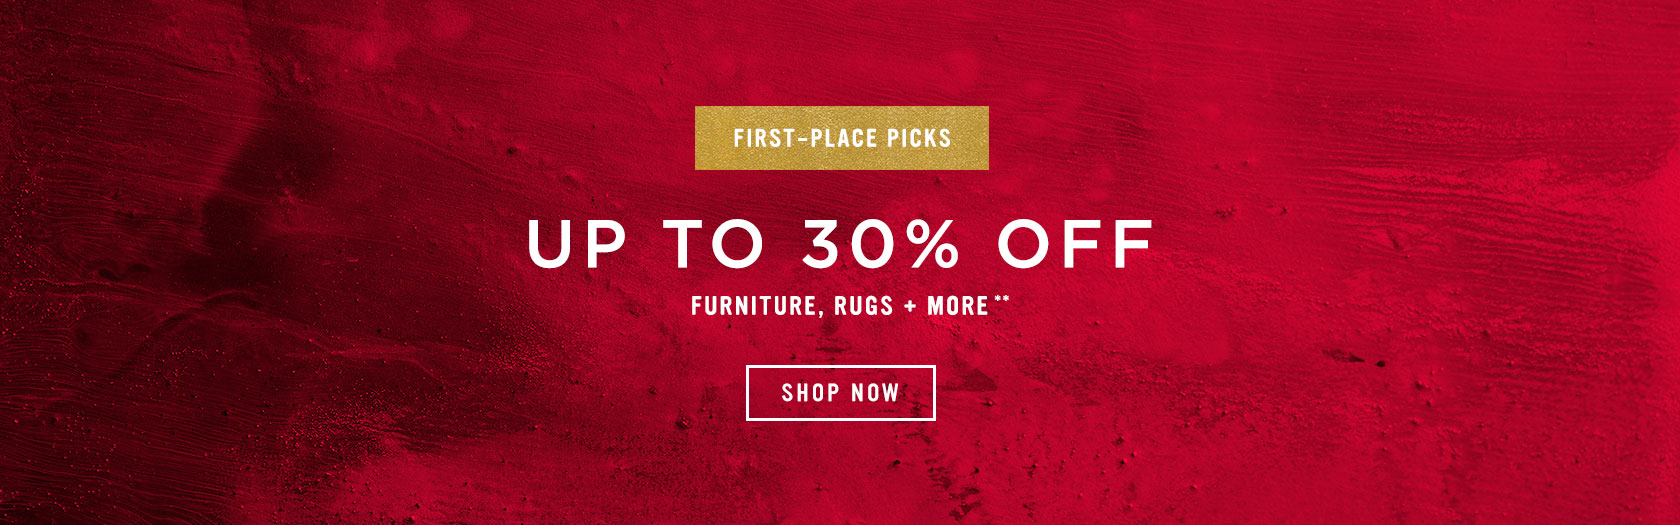 Up To 30% Off Furniture, Rugs + More